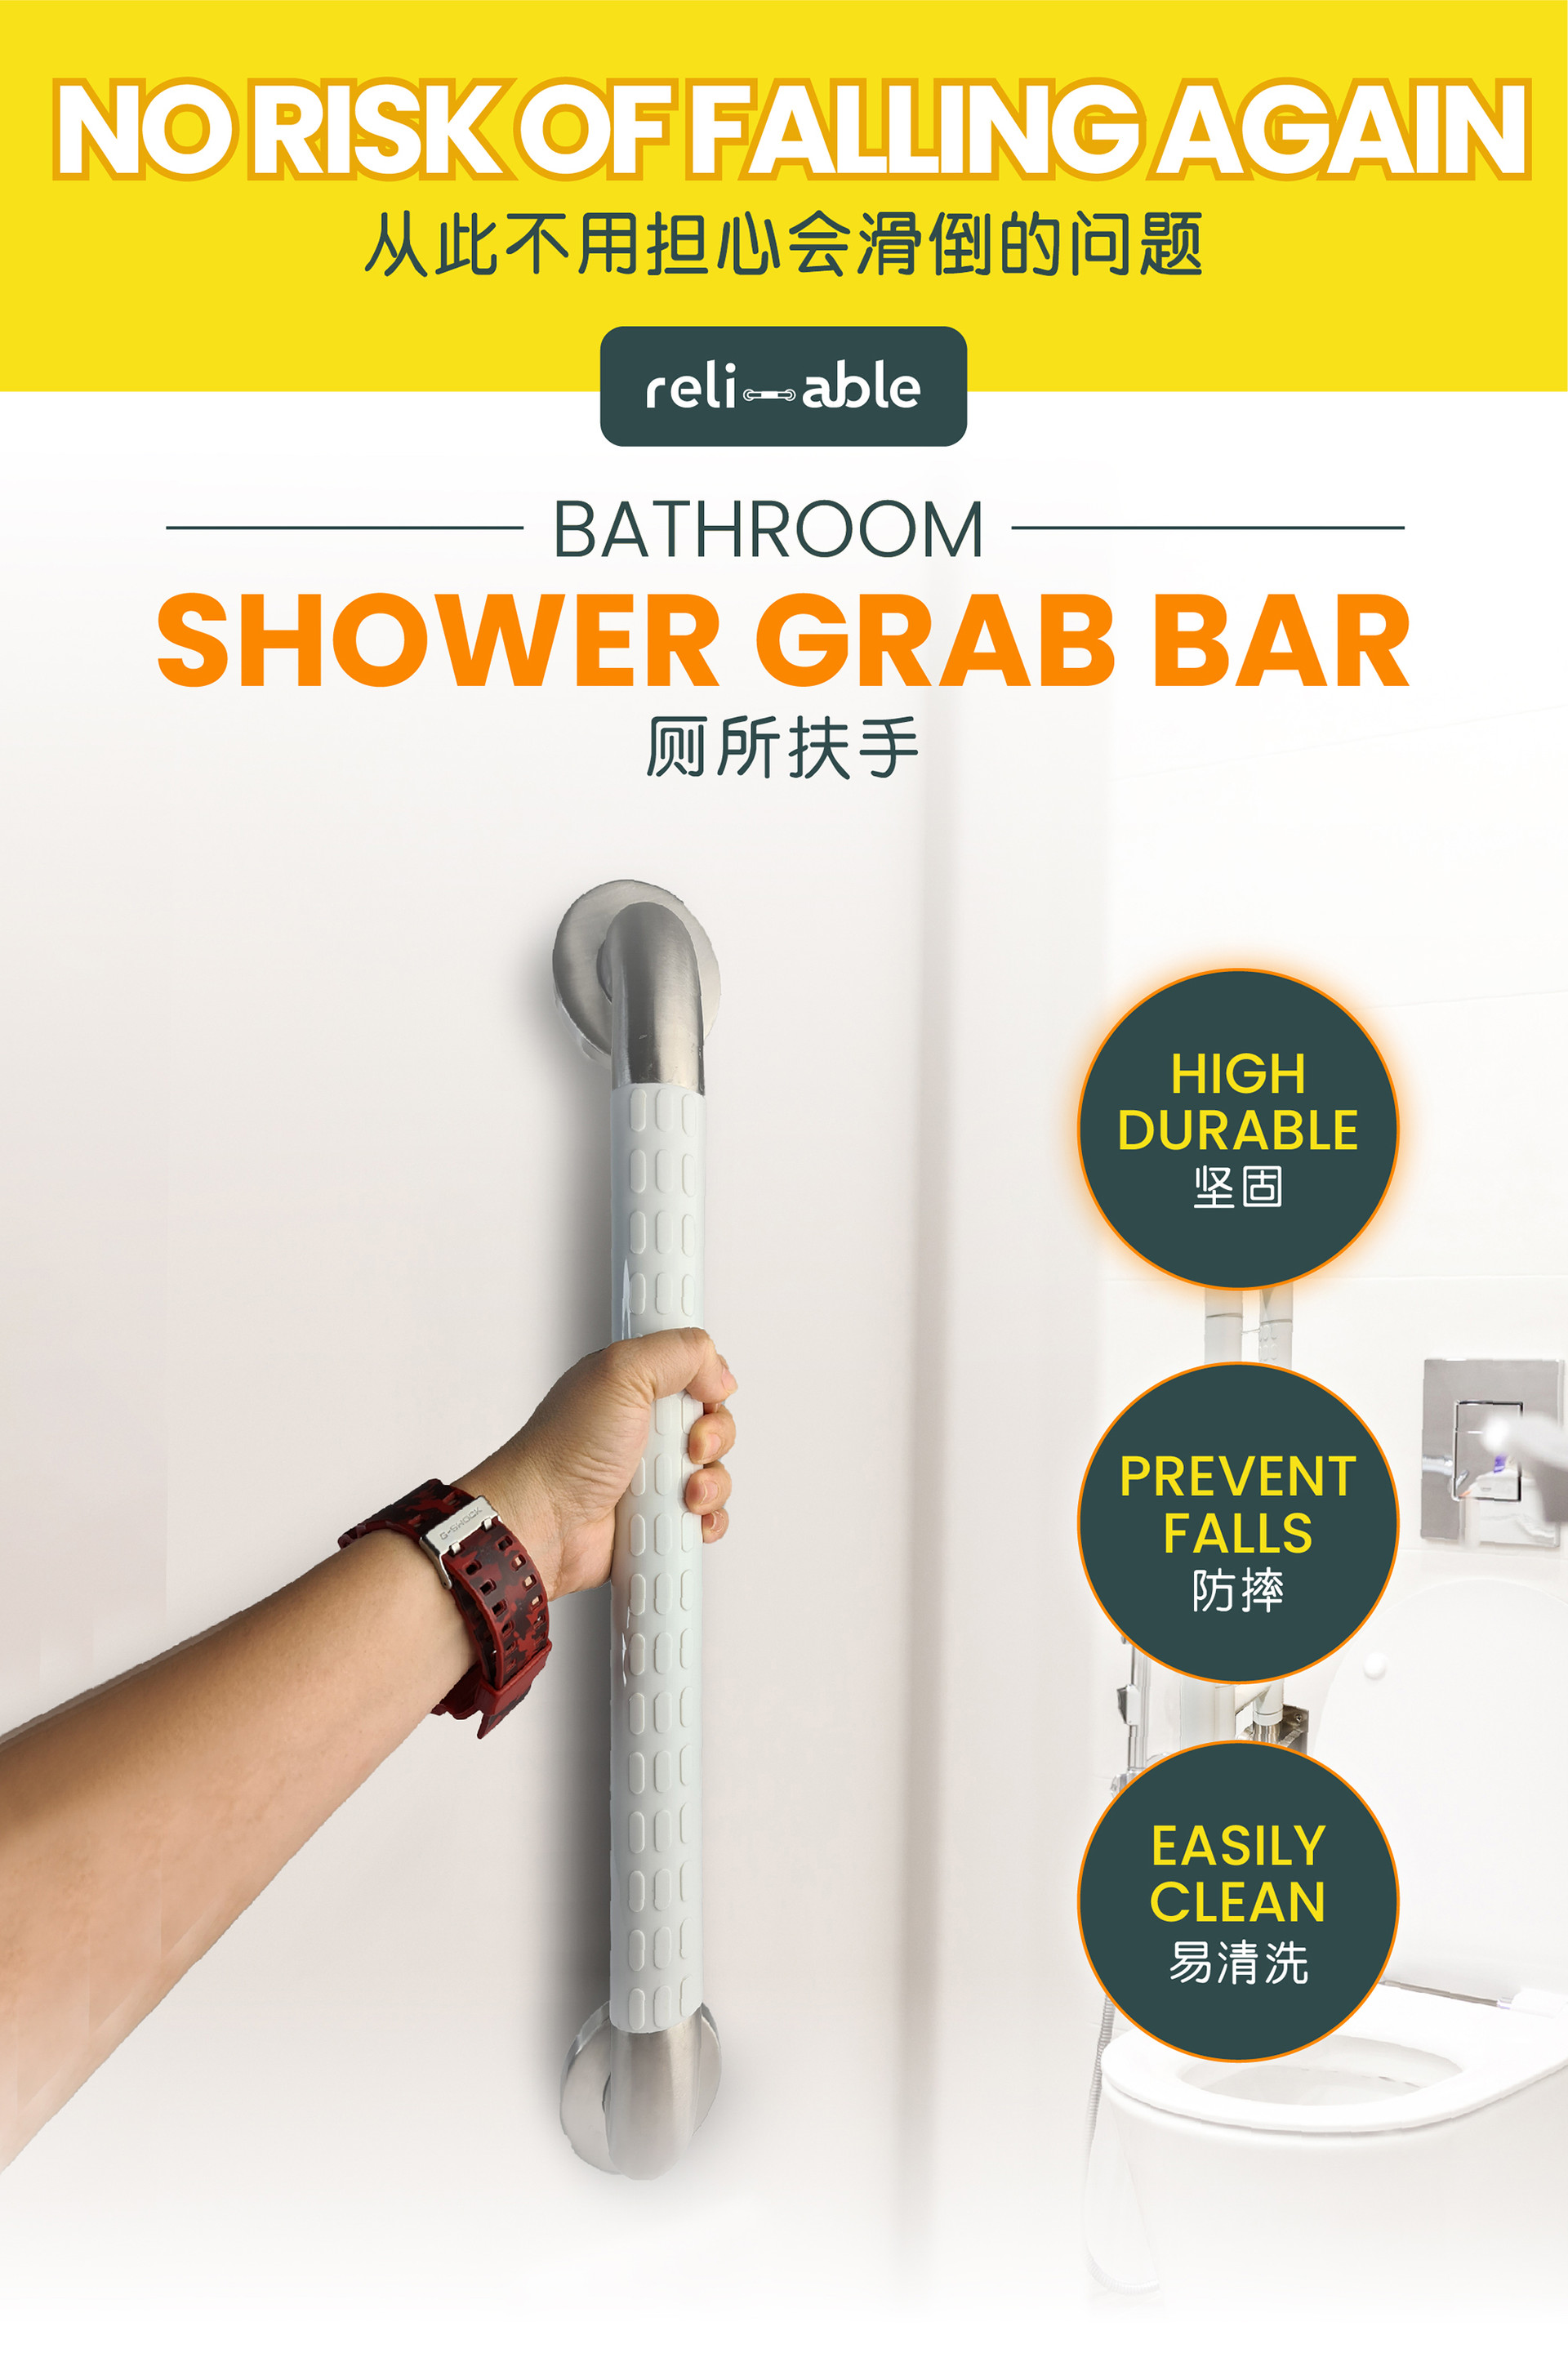 Shower Grab bar-POSM-01.jpg